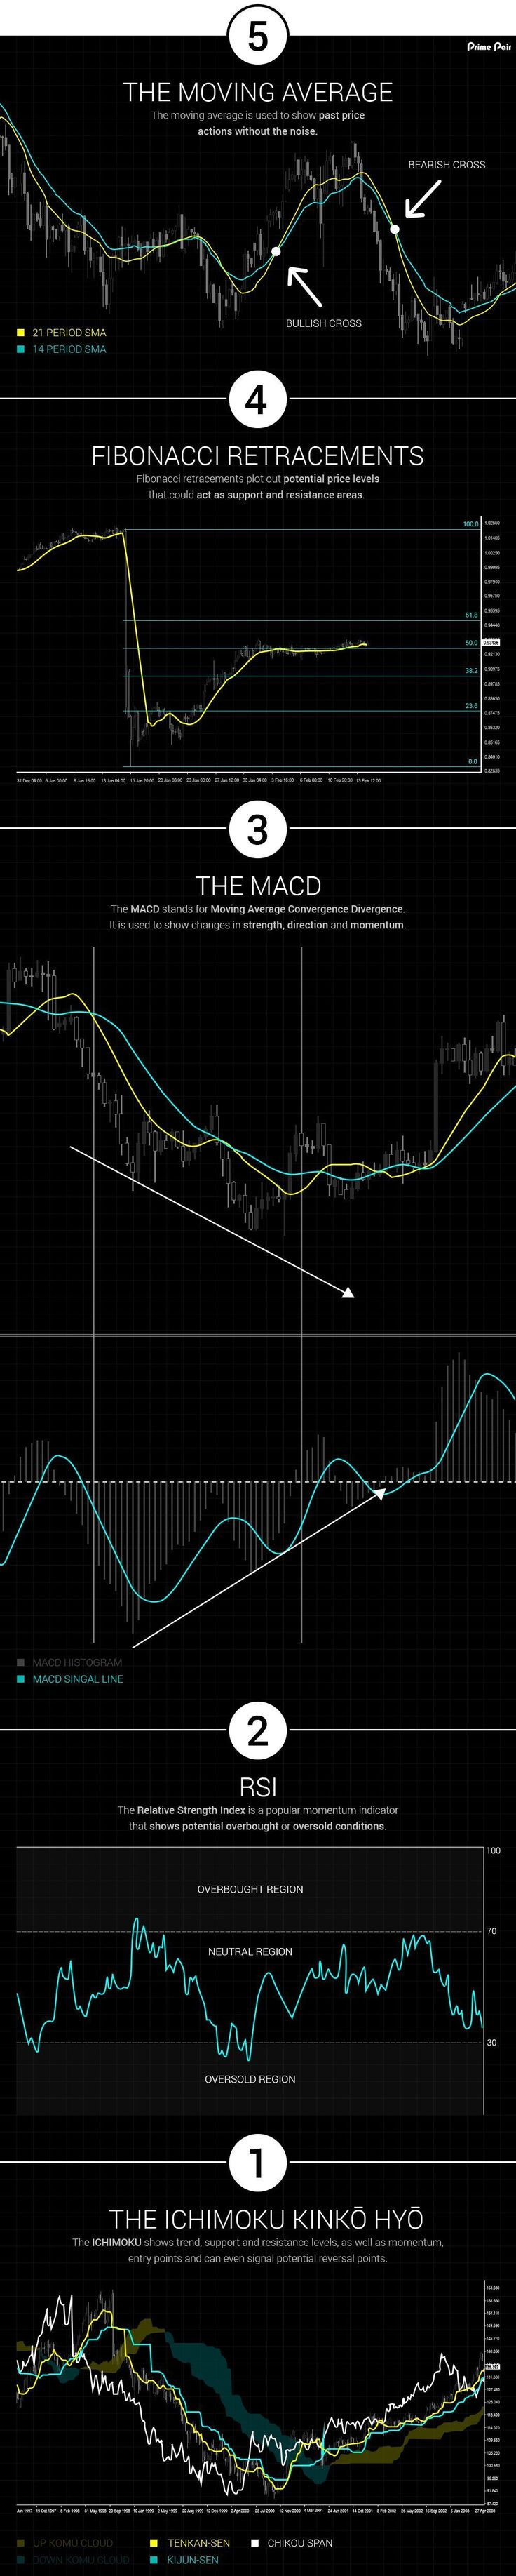 Best technical indicator for forex trading